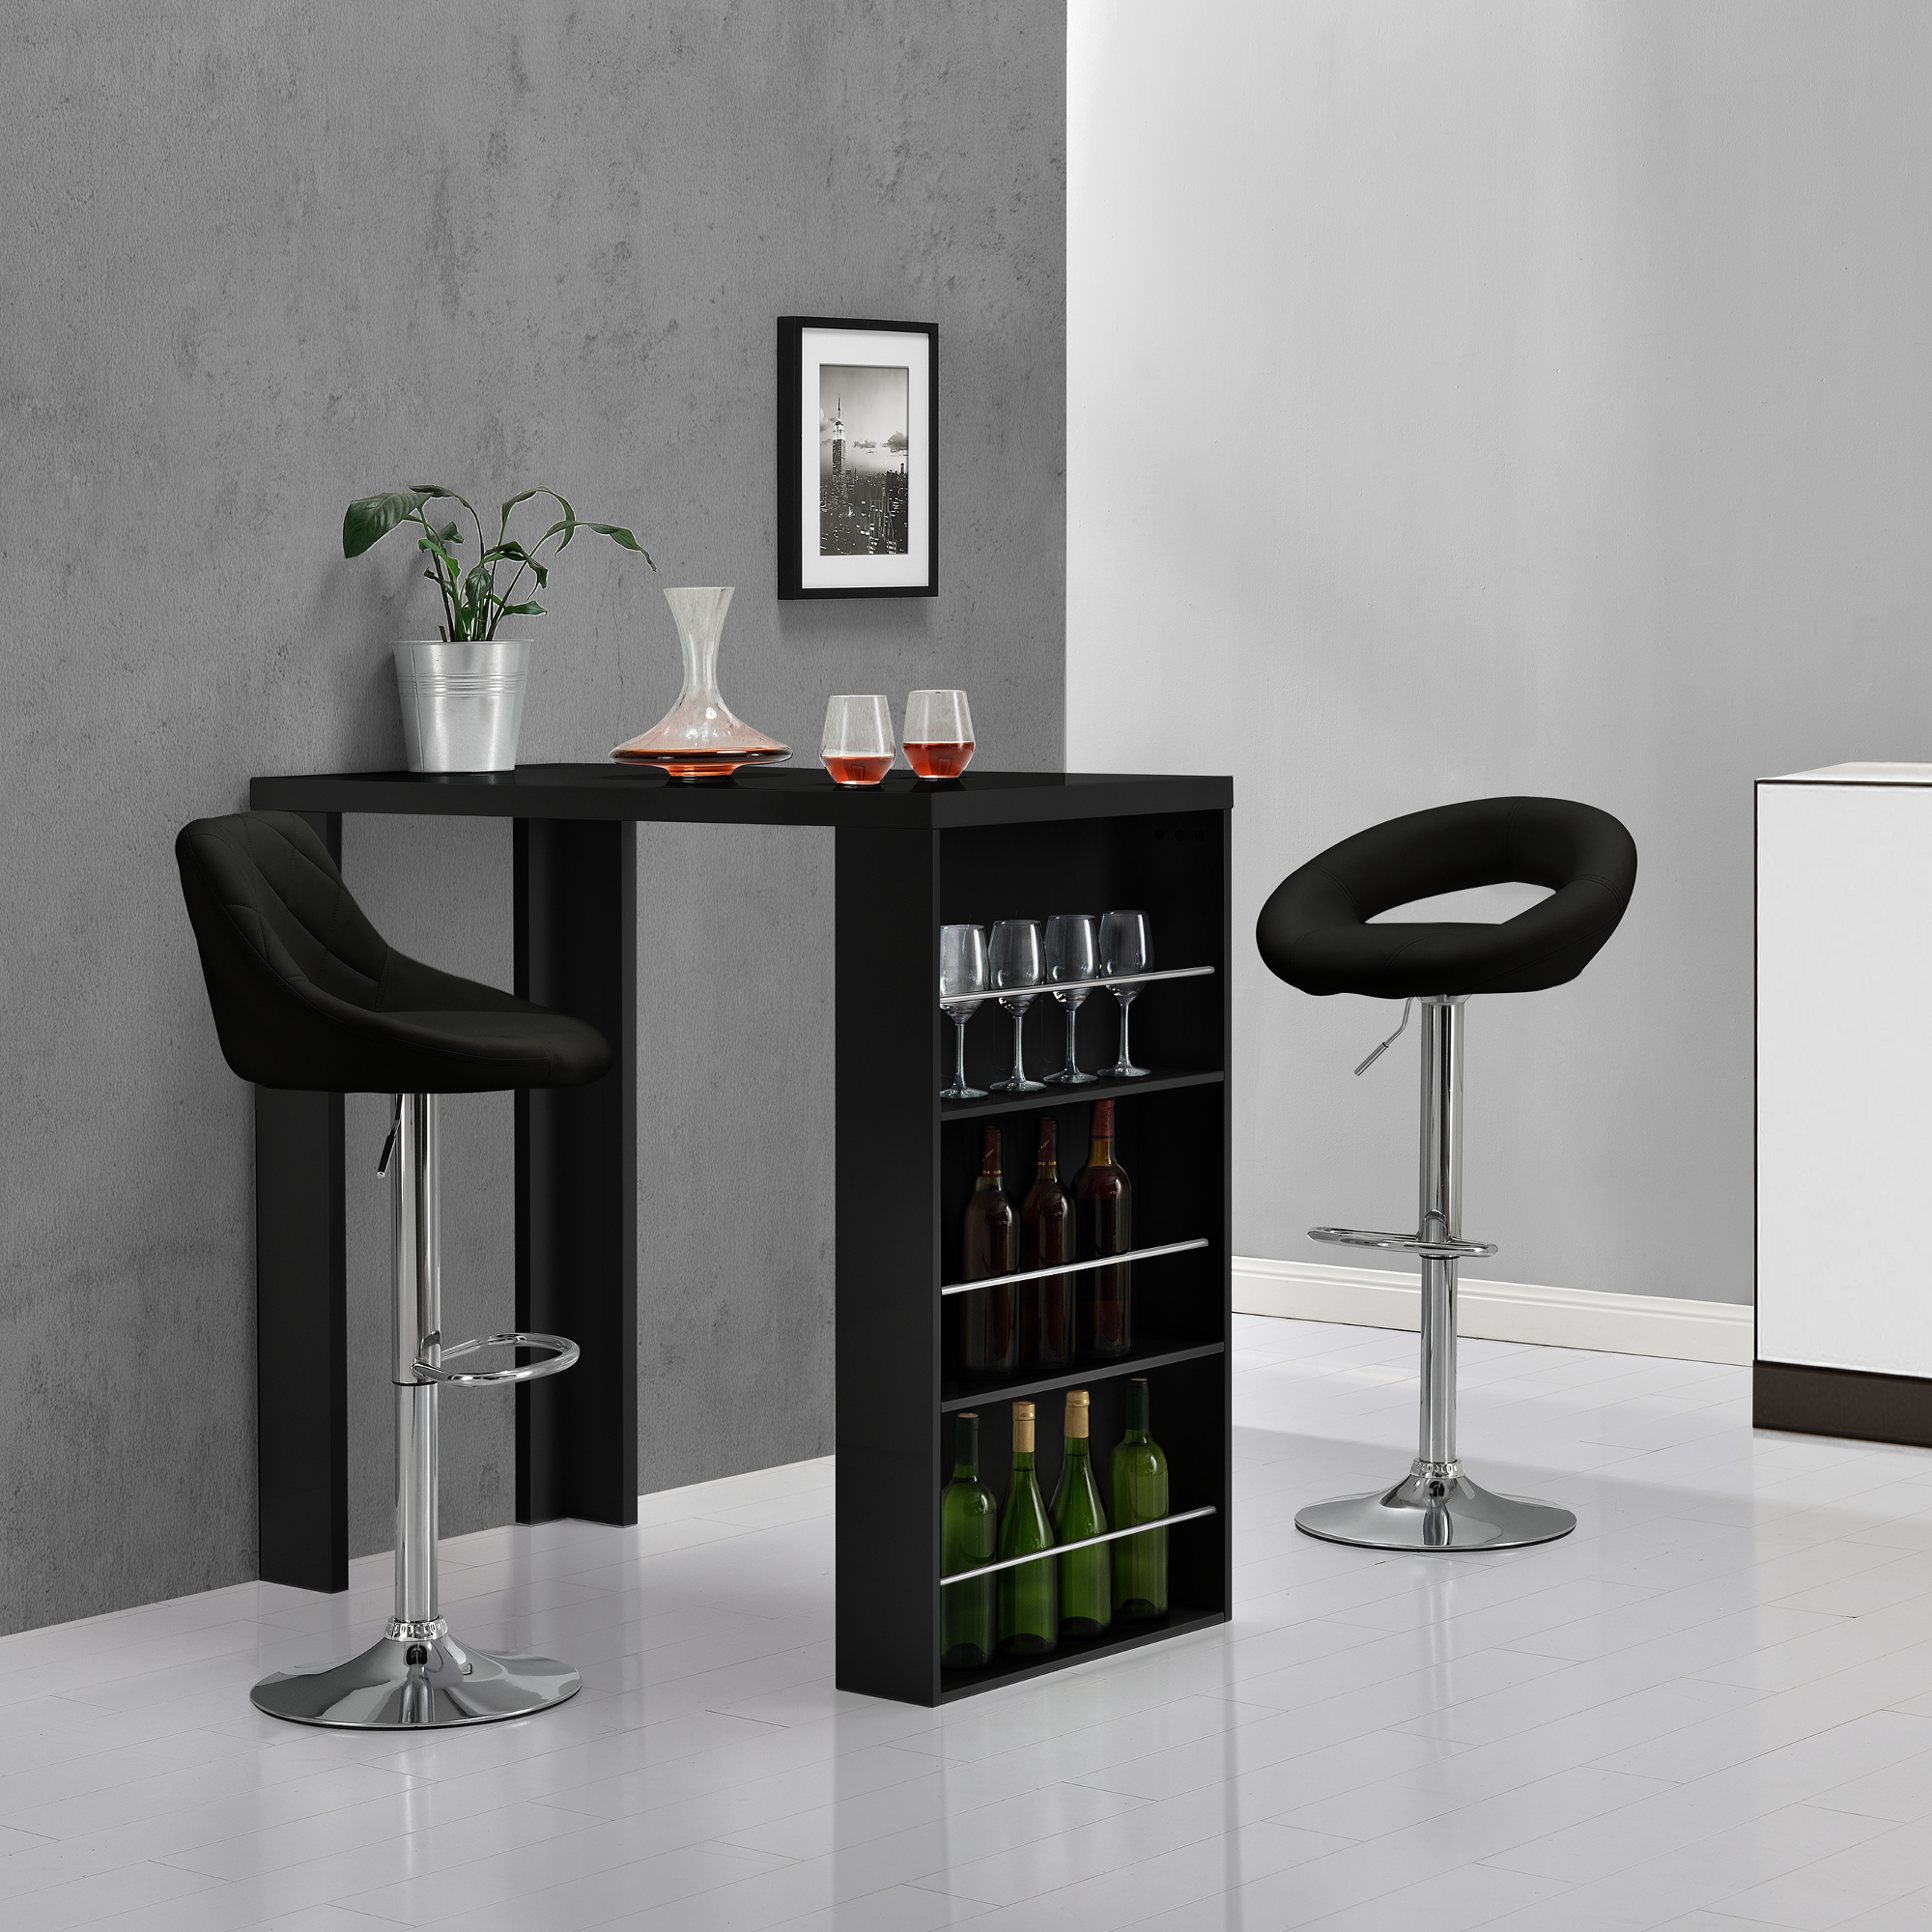 bartheke schwarz bartresen bartisch stehtisch theke tresen bar hausbar ebay. Black Bedroom Furniture Sets. Home Design Ideas